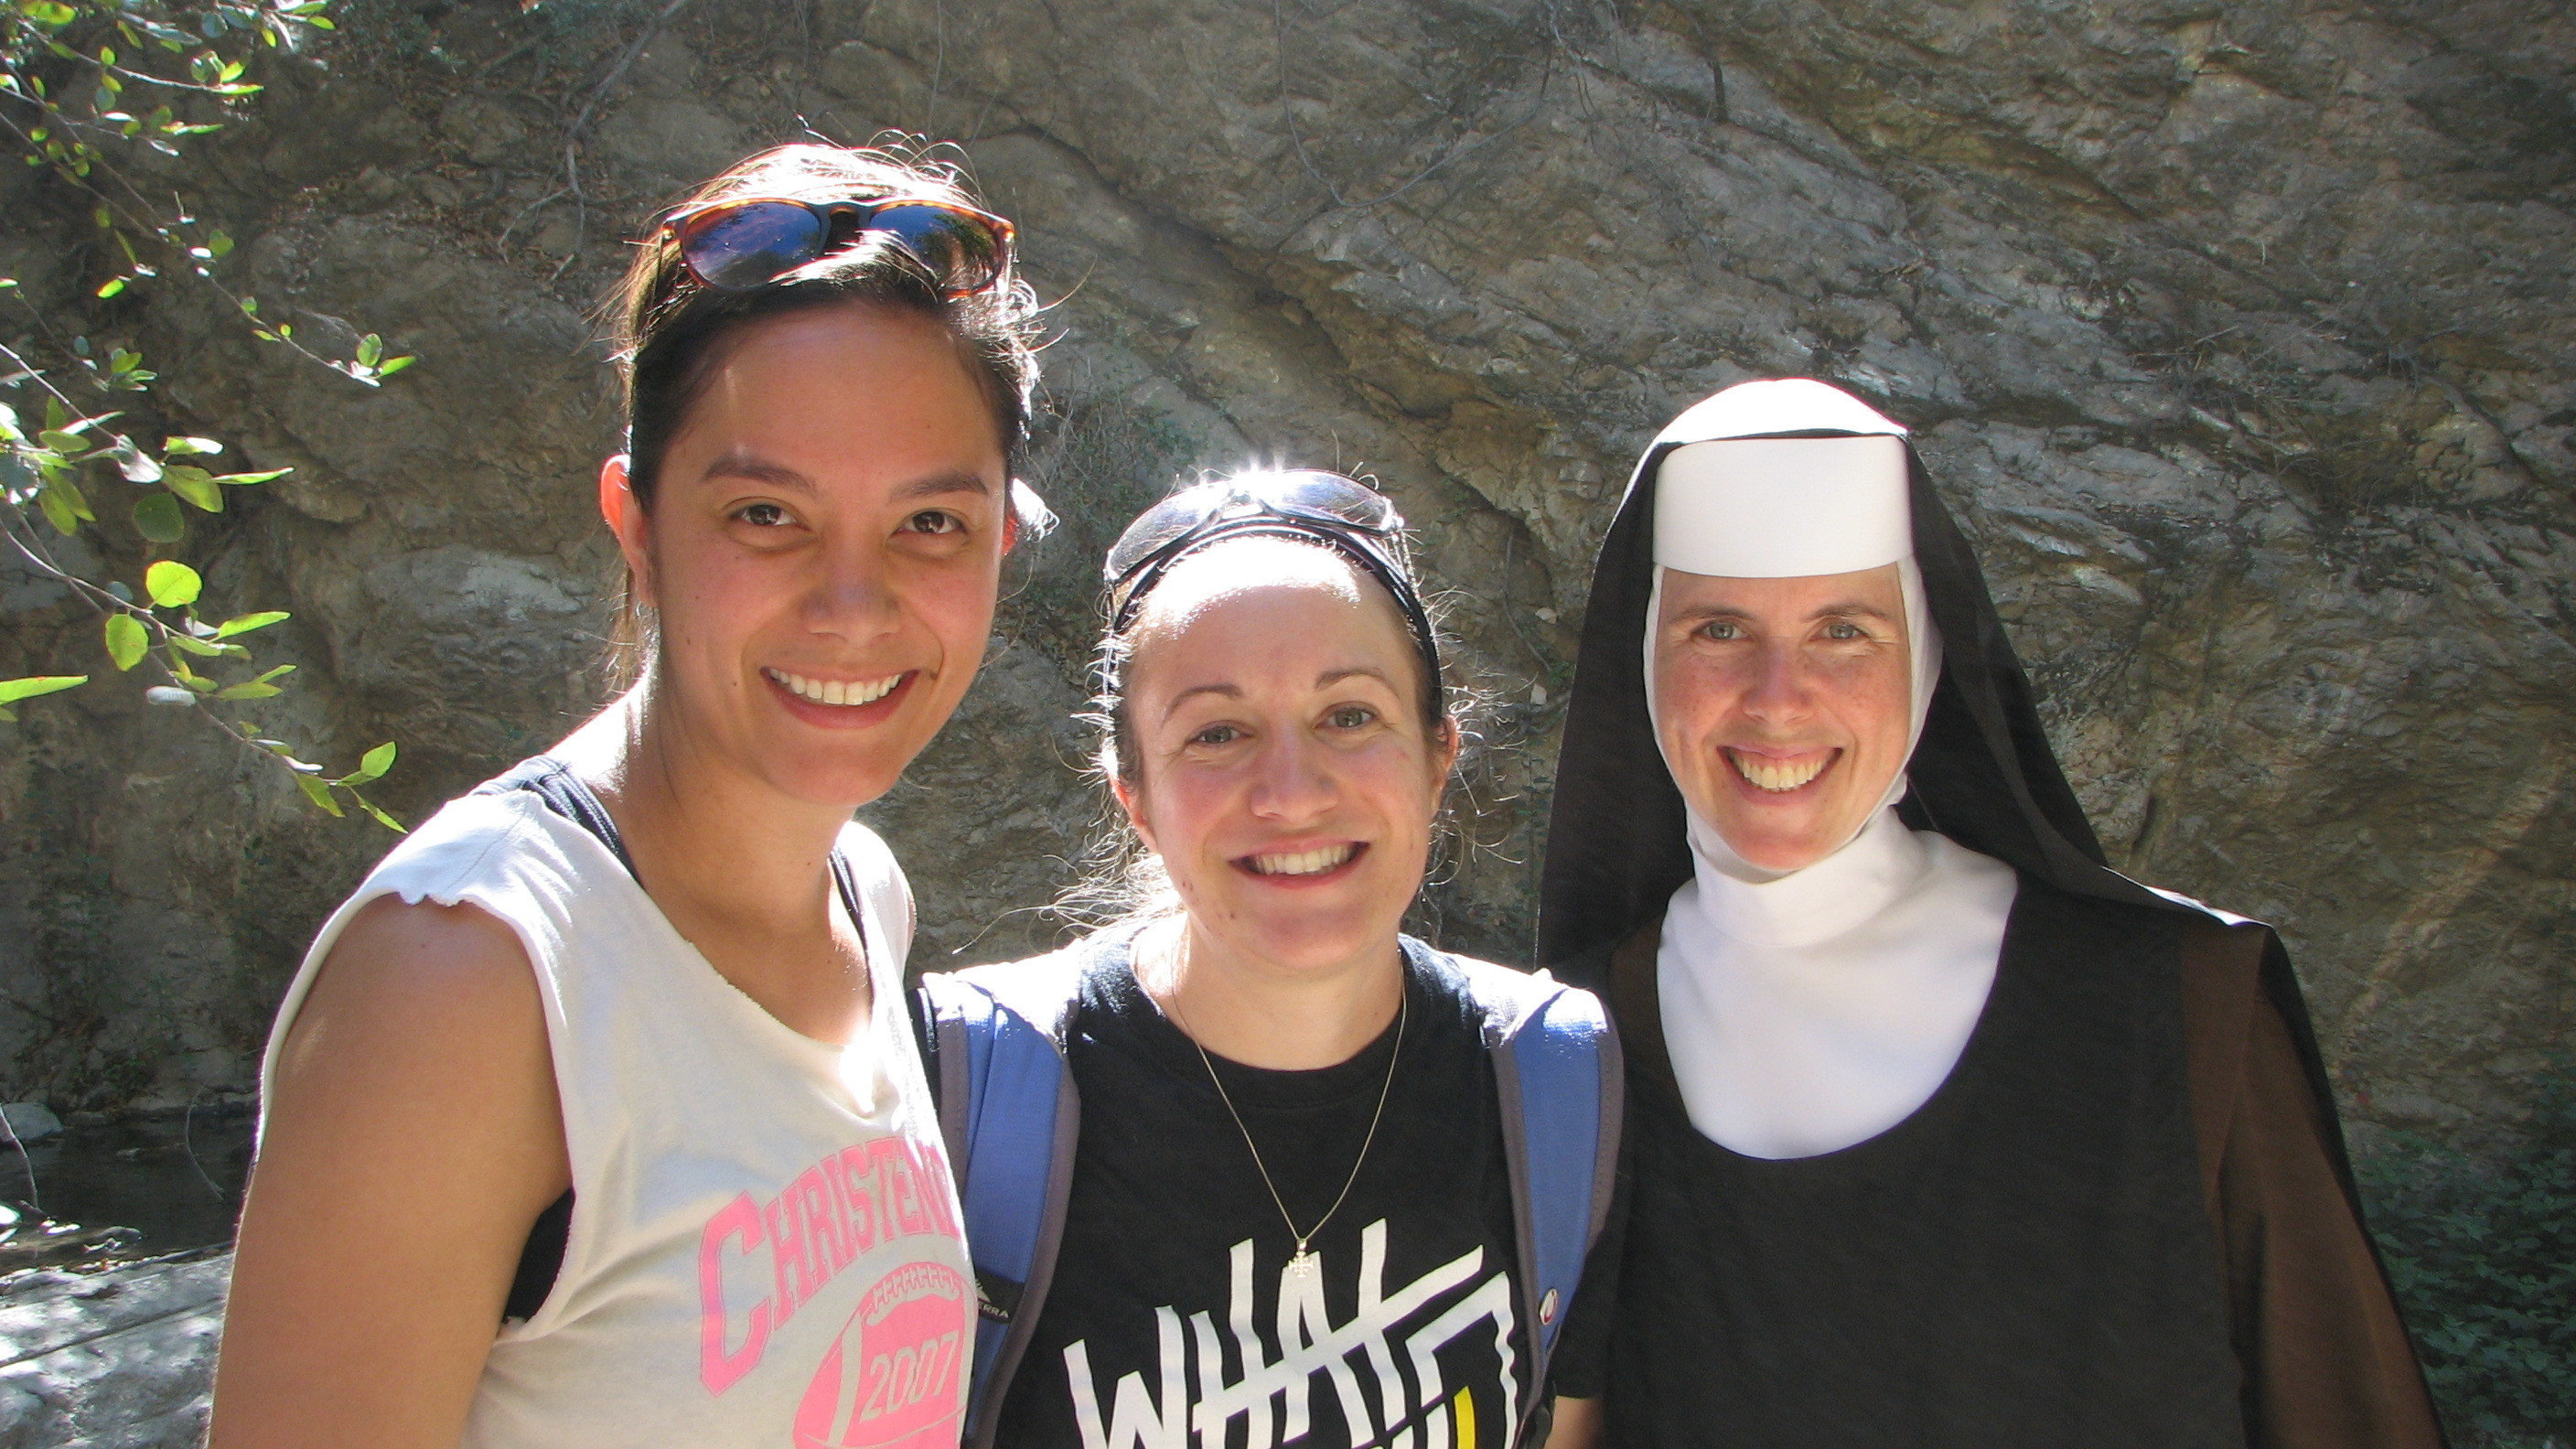 Carmelite Sisters Vocation Hike